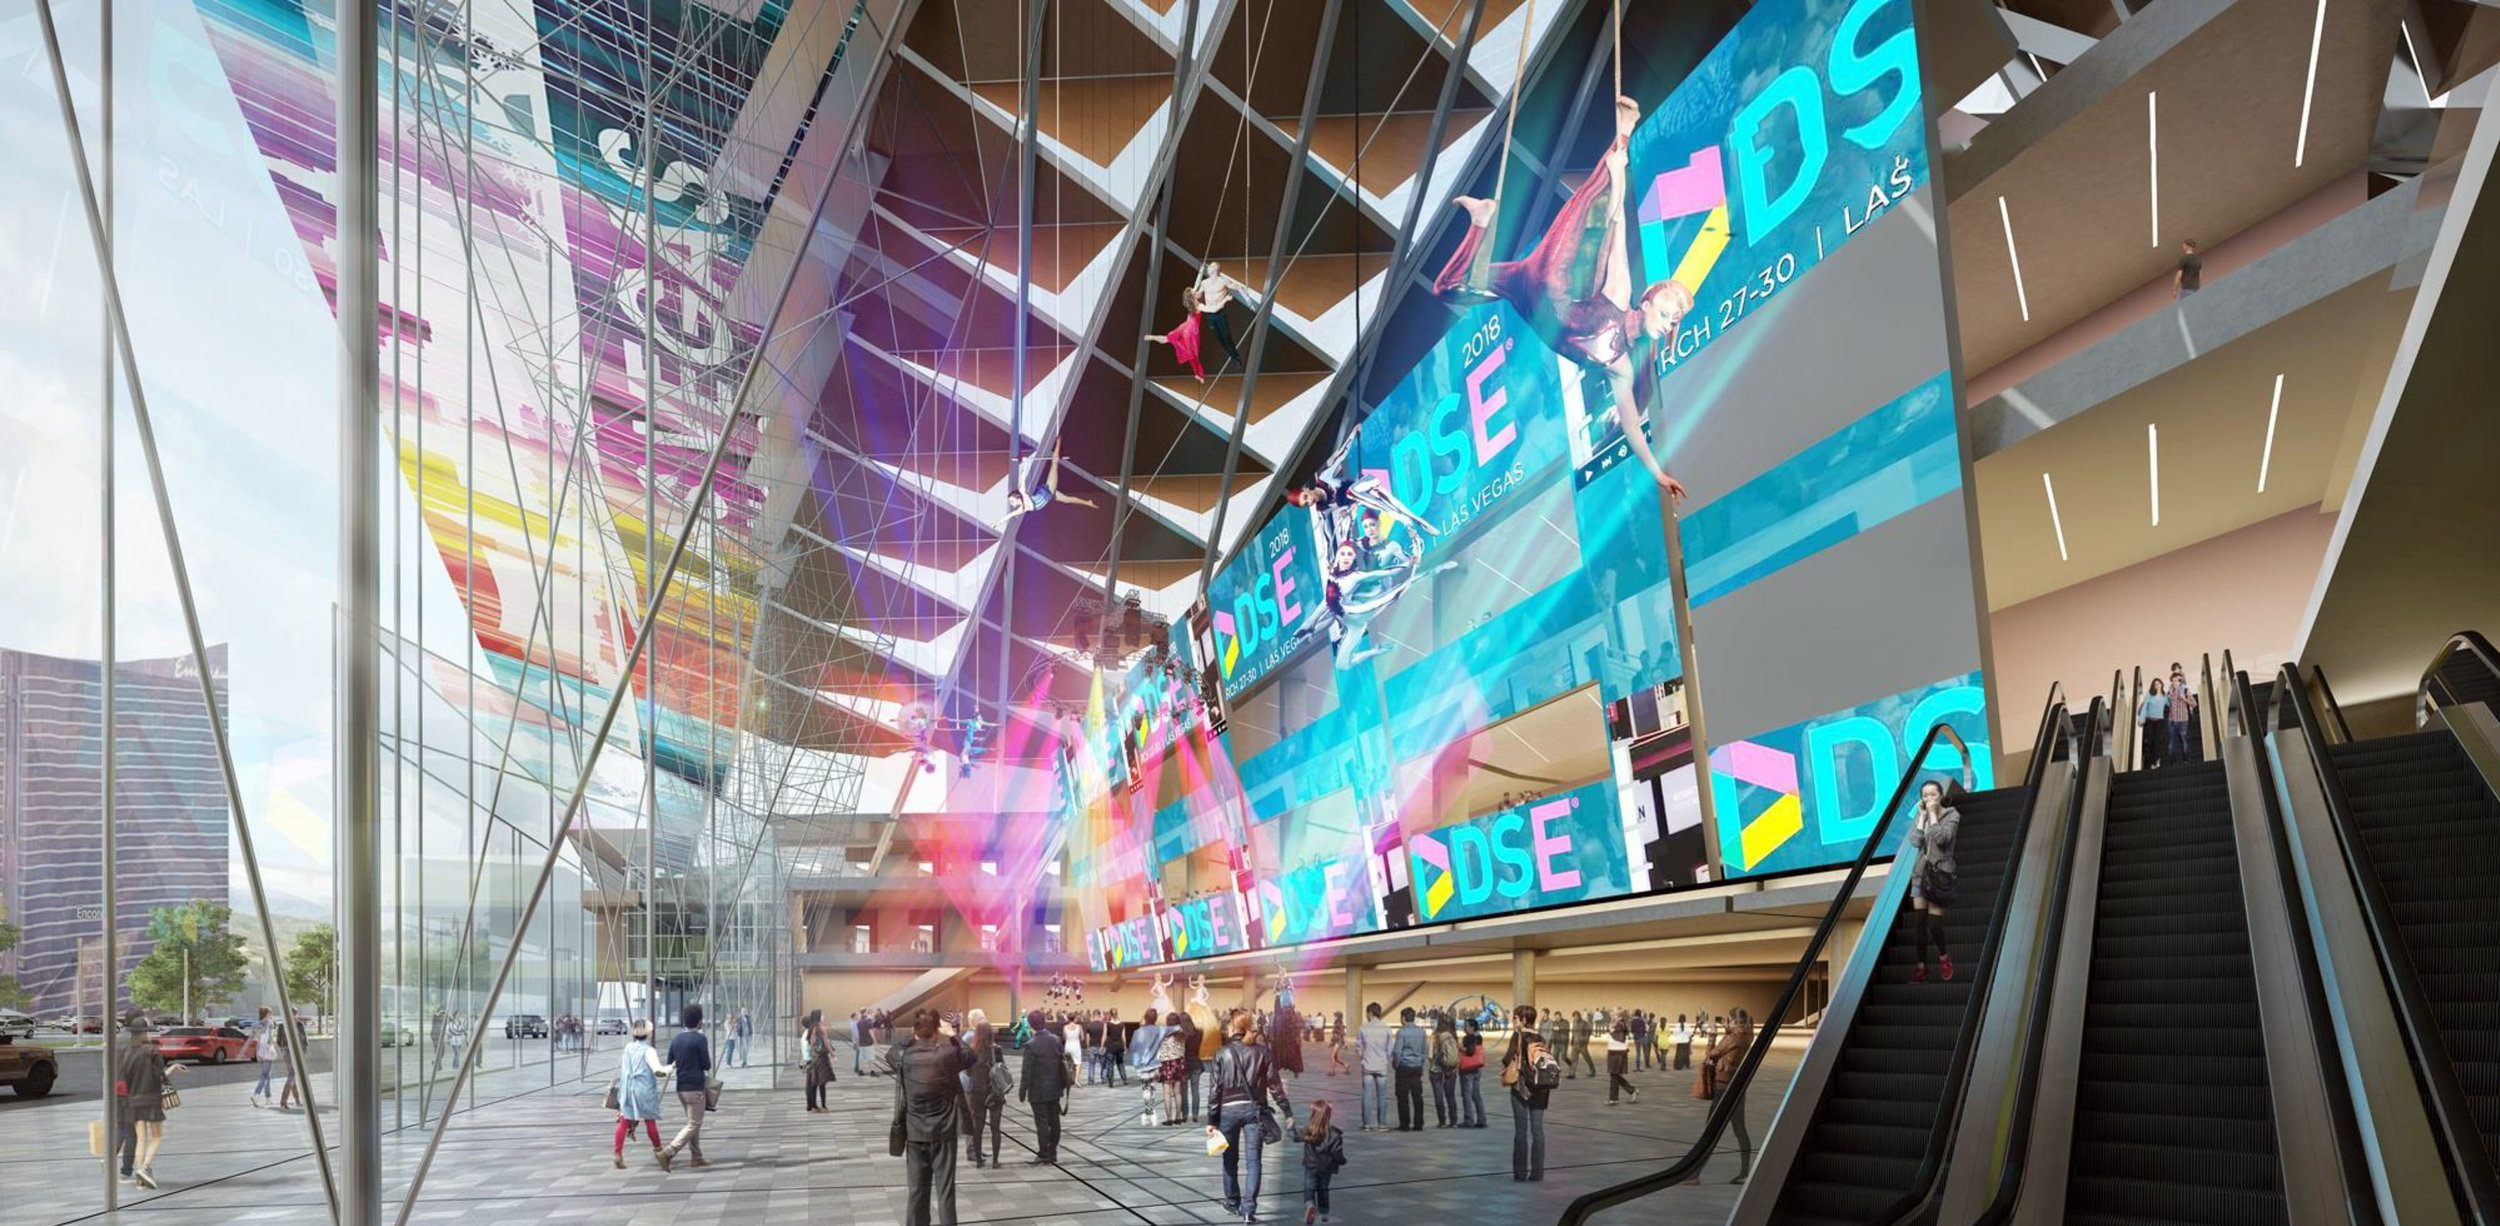 A rendering of the proposed Las Vegas Convention Center design